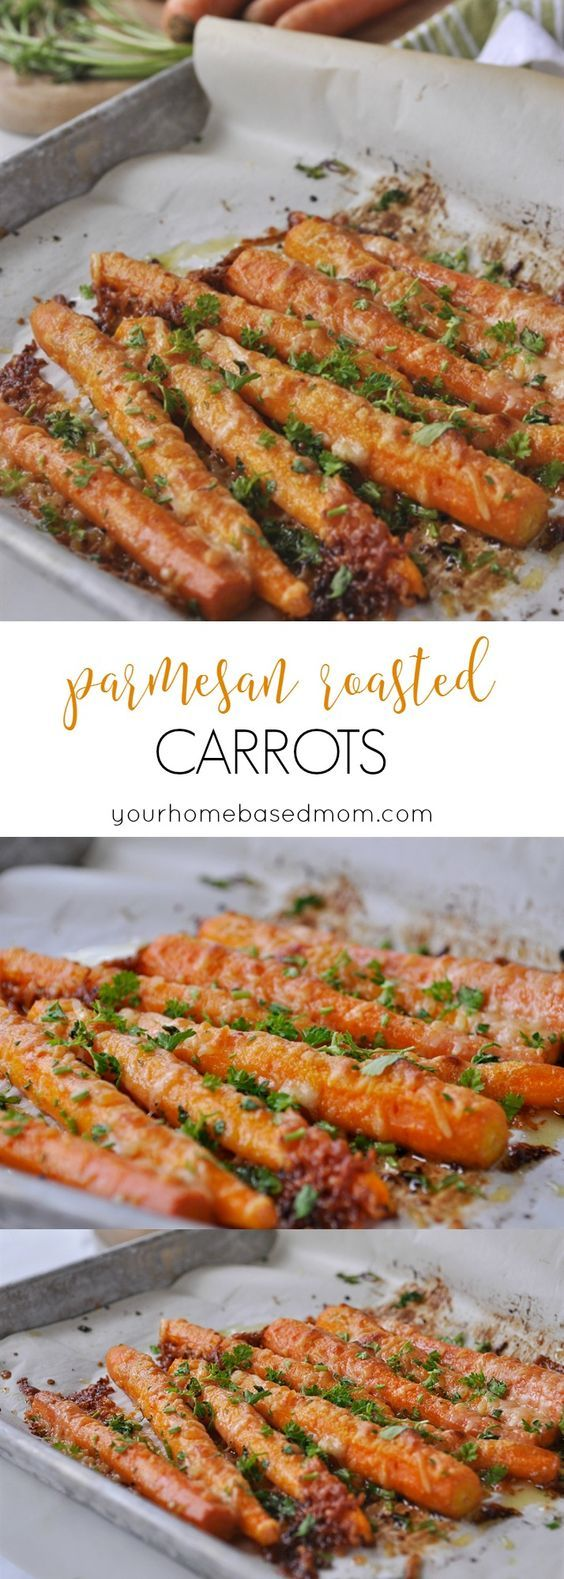 Parmesan Roasted Carrots Recipe